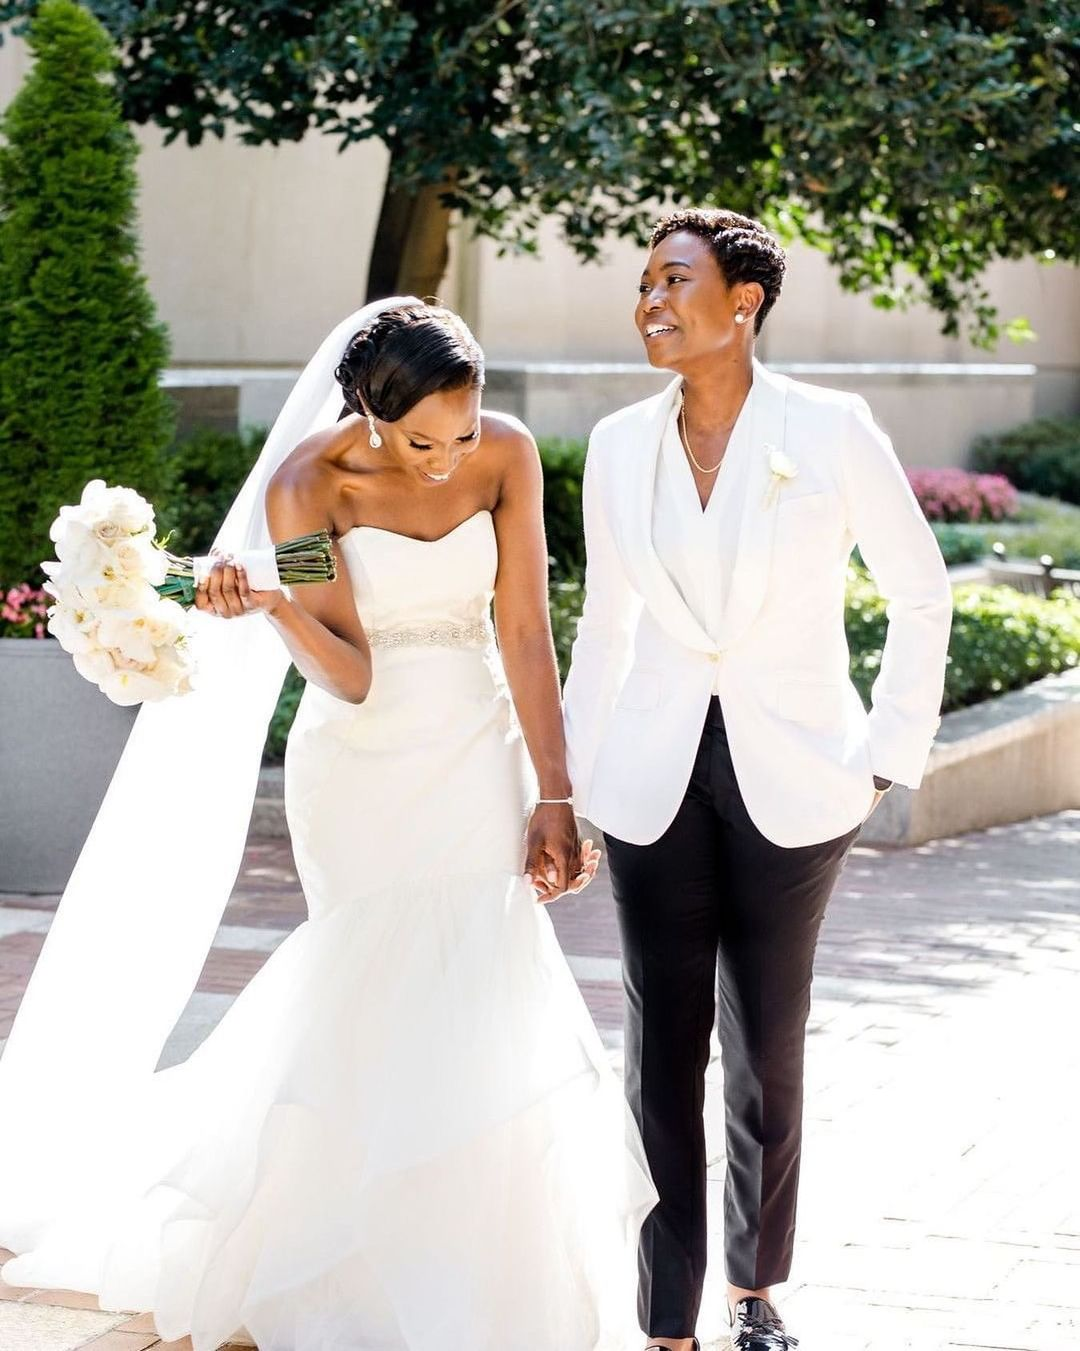 How-to-Manage-First-Dance-Wedding-Jitters-Bridal-Musings-DJ-Malike-8 How To Manage Wedding First Dance Jitters